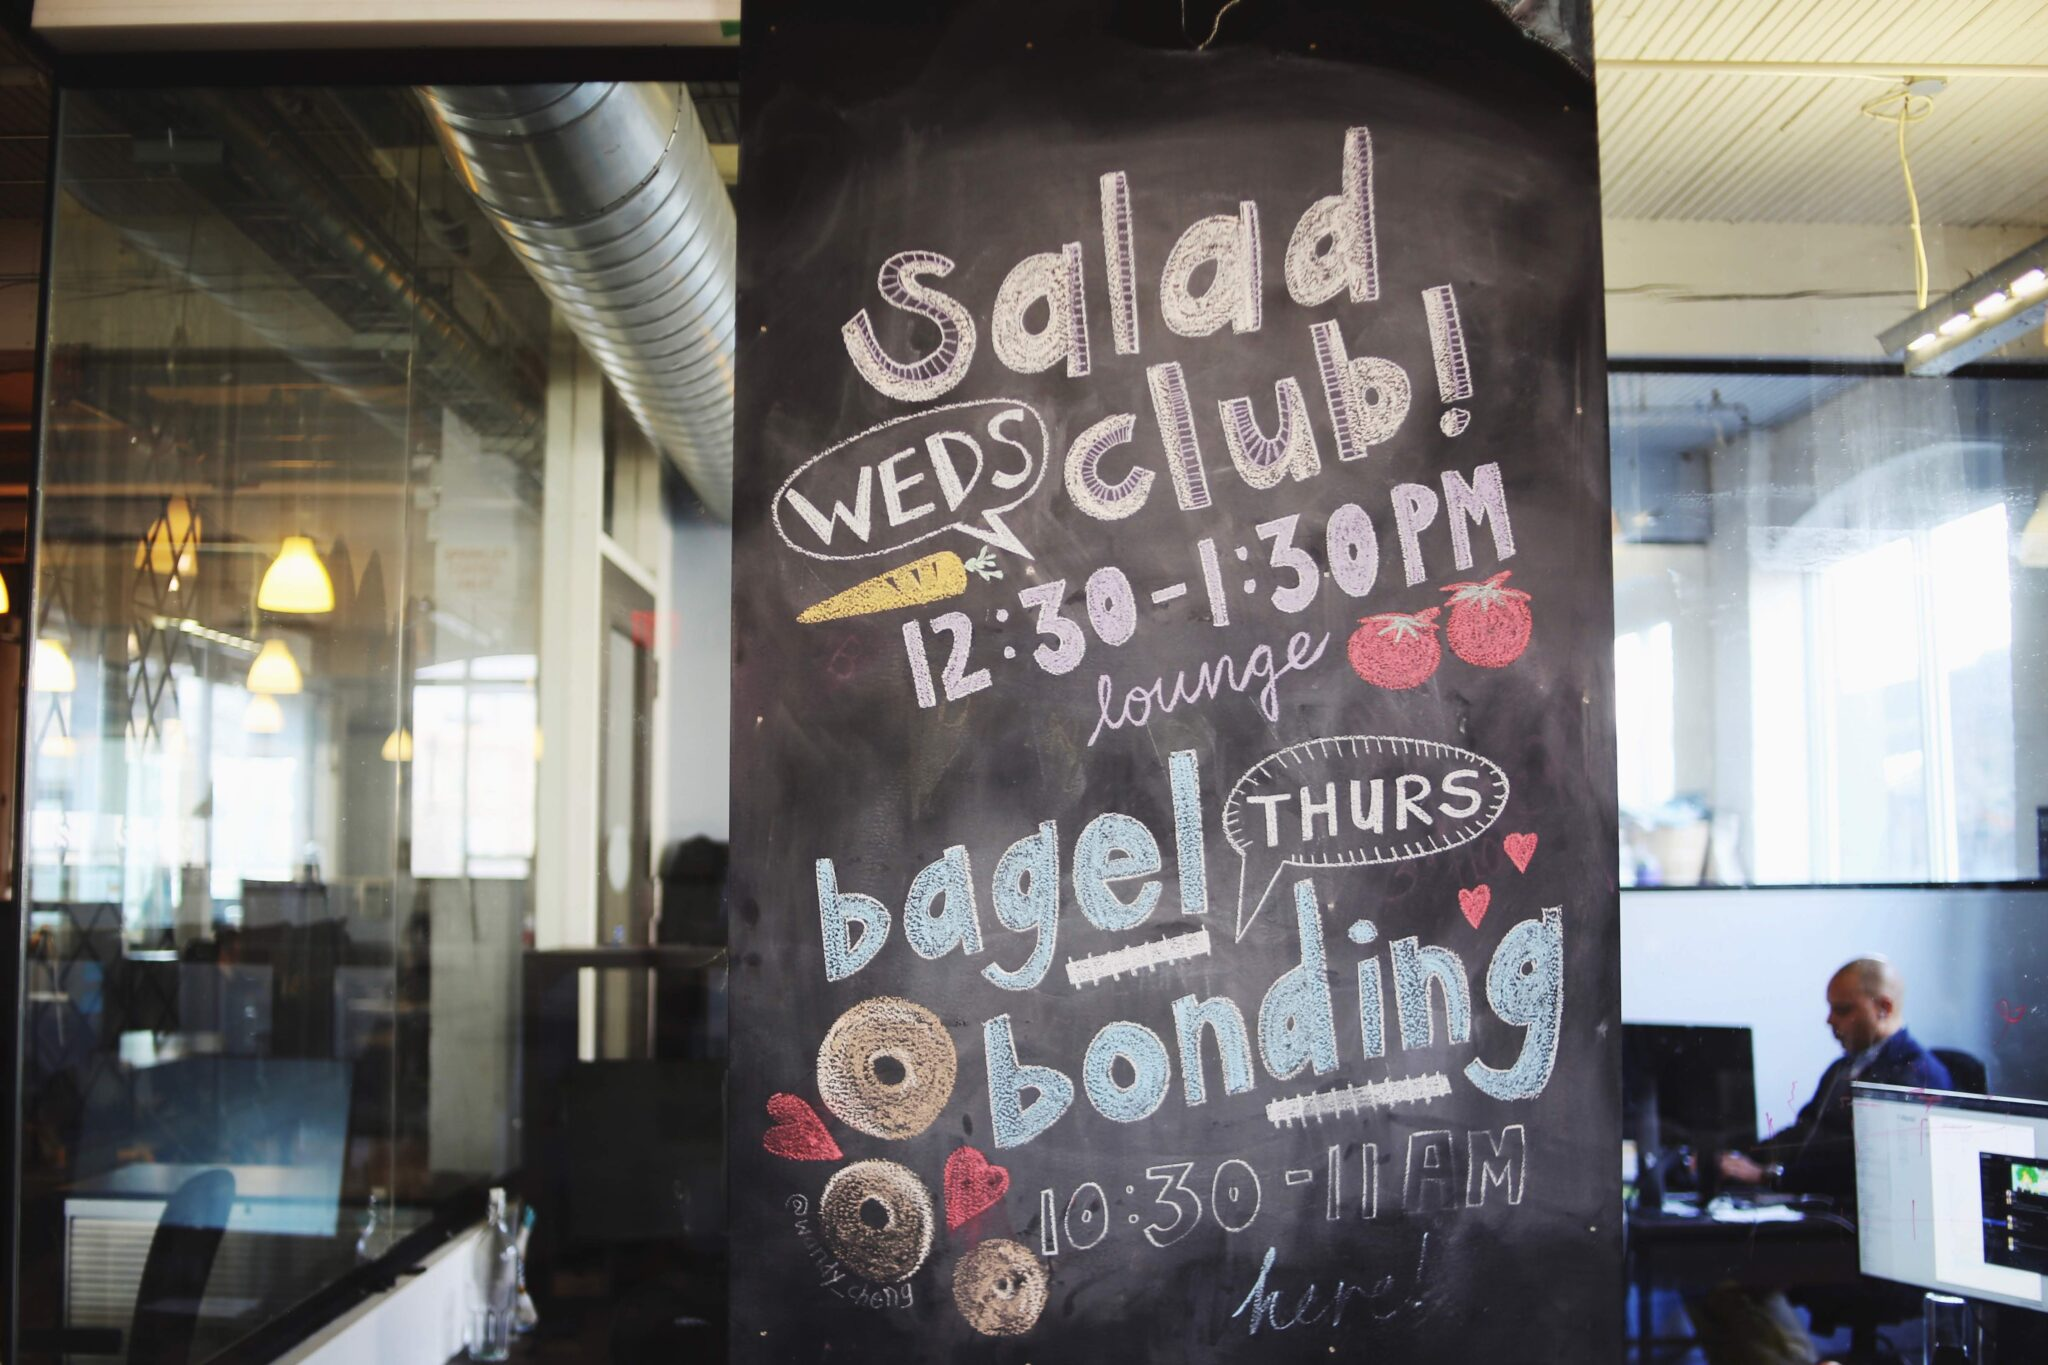 A chalkboard at the Centre for Social Innovation advertising Salad Club and Bagel Bonding